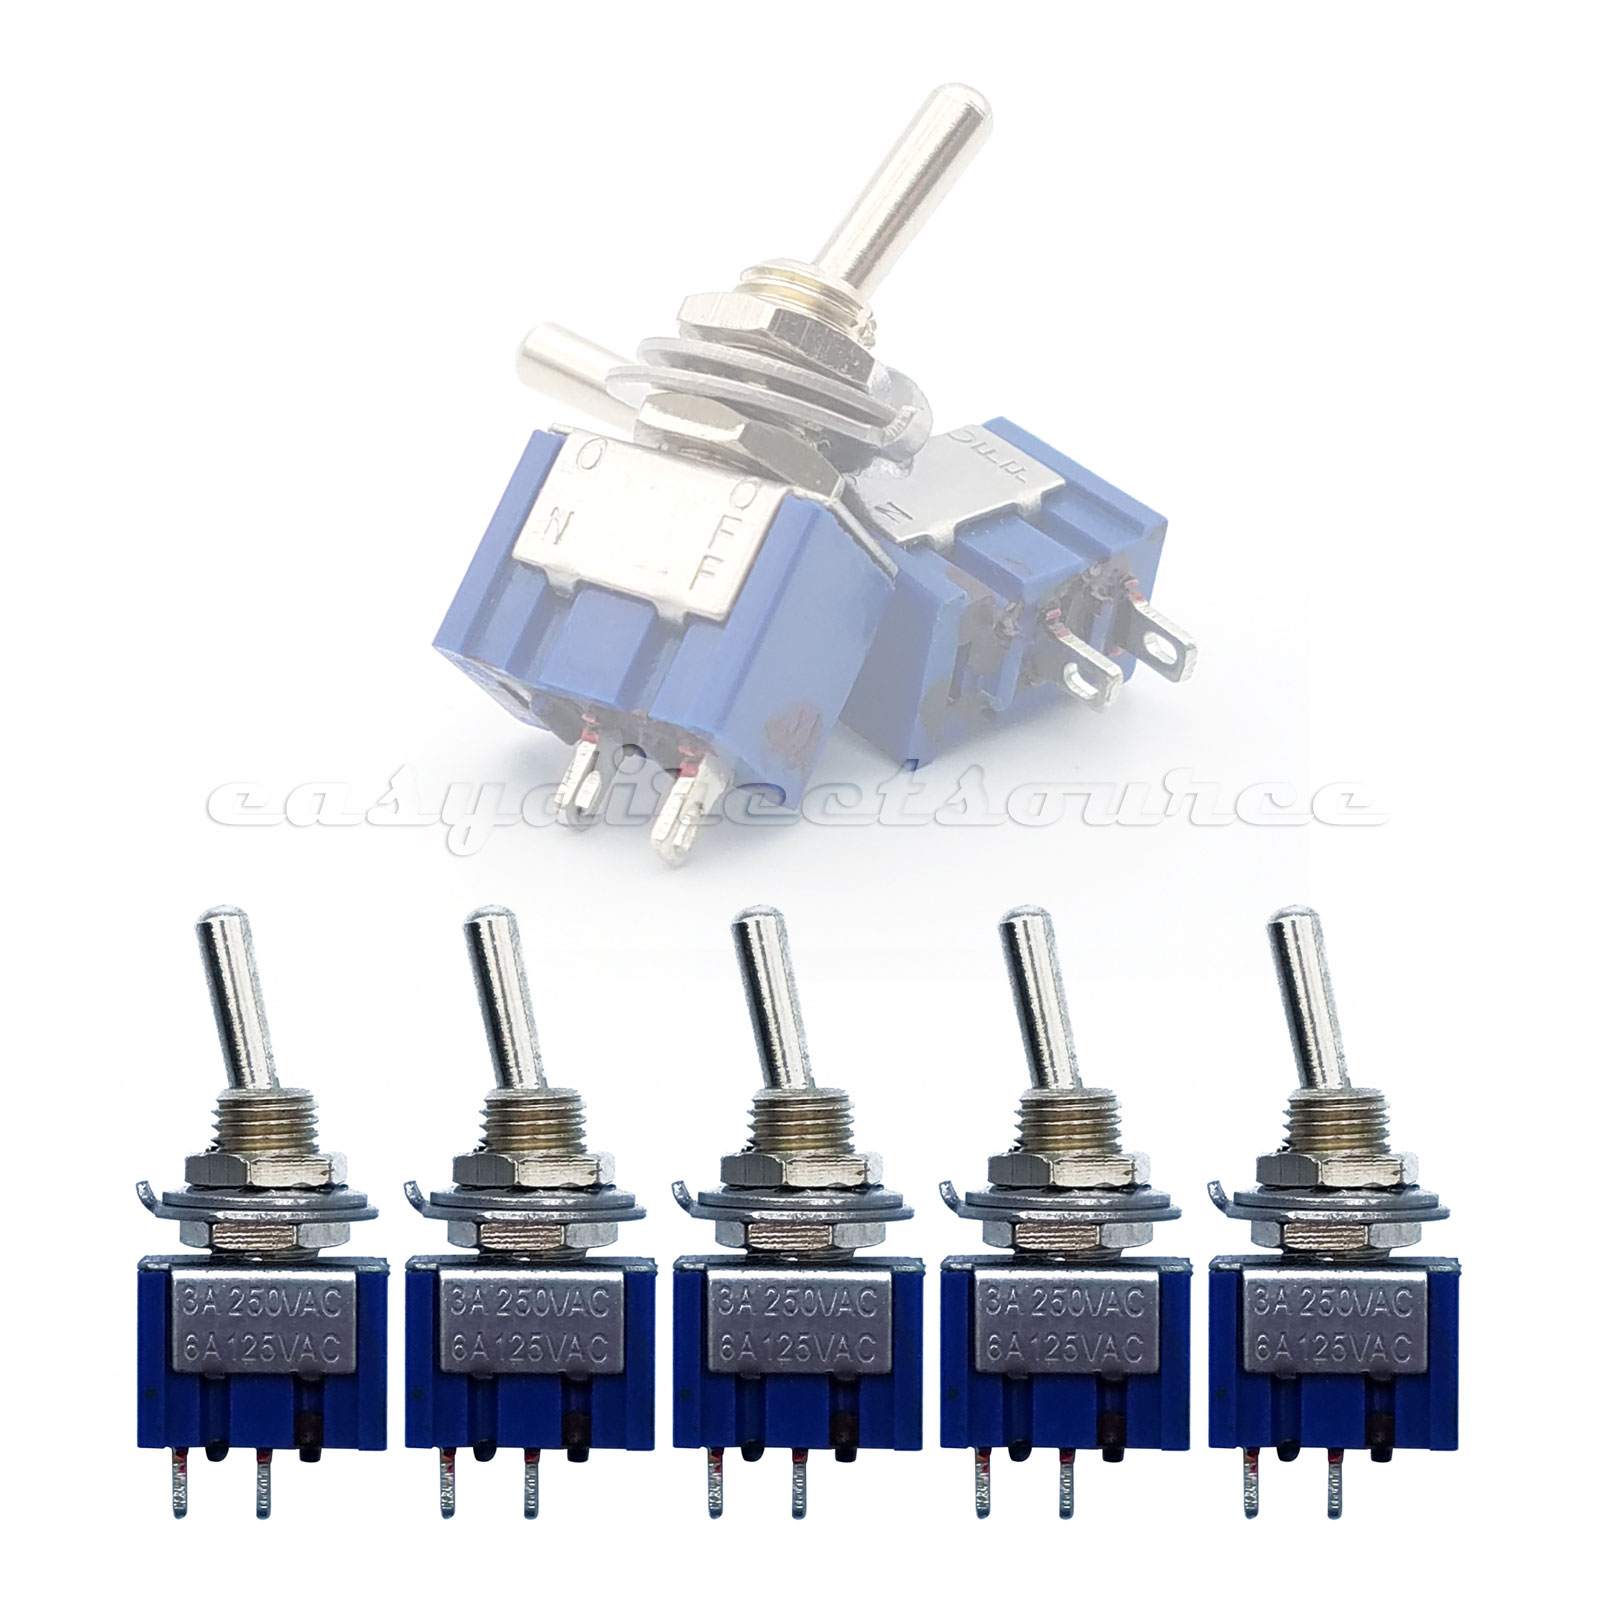 5pcs 2 Pin Spst Position 6a 250vac On Off Mts 101 Mini Toggle Rocker Switches Switch Onoff